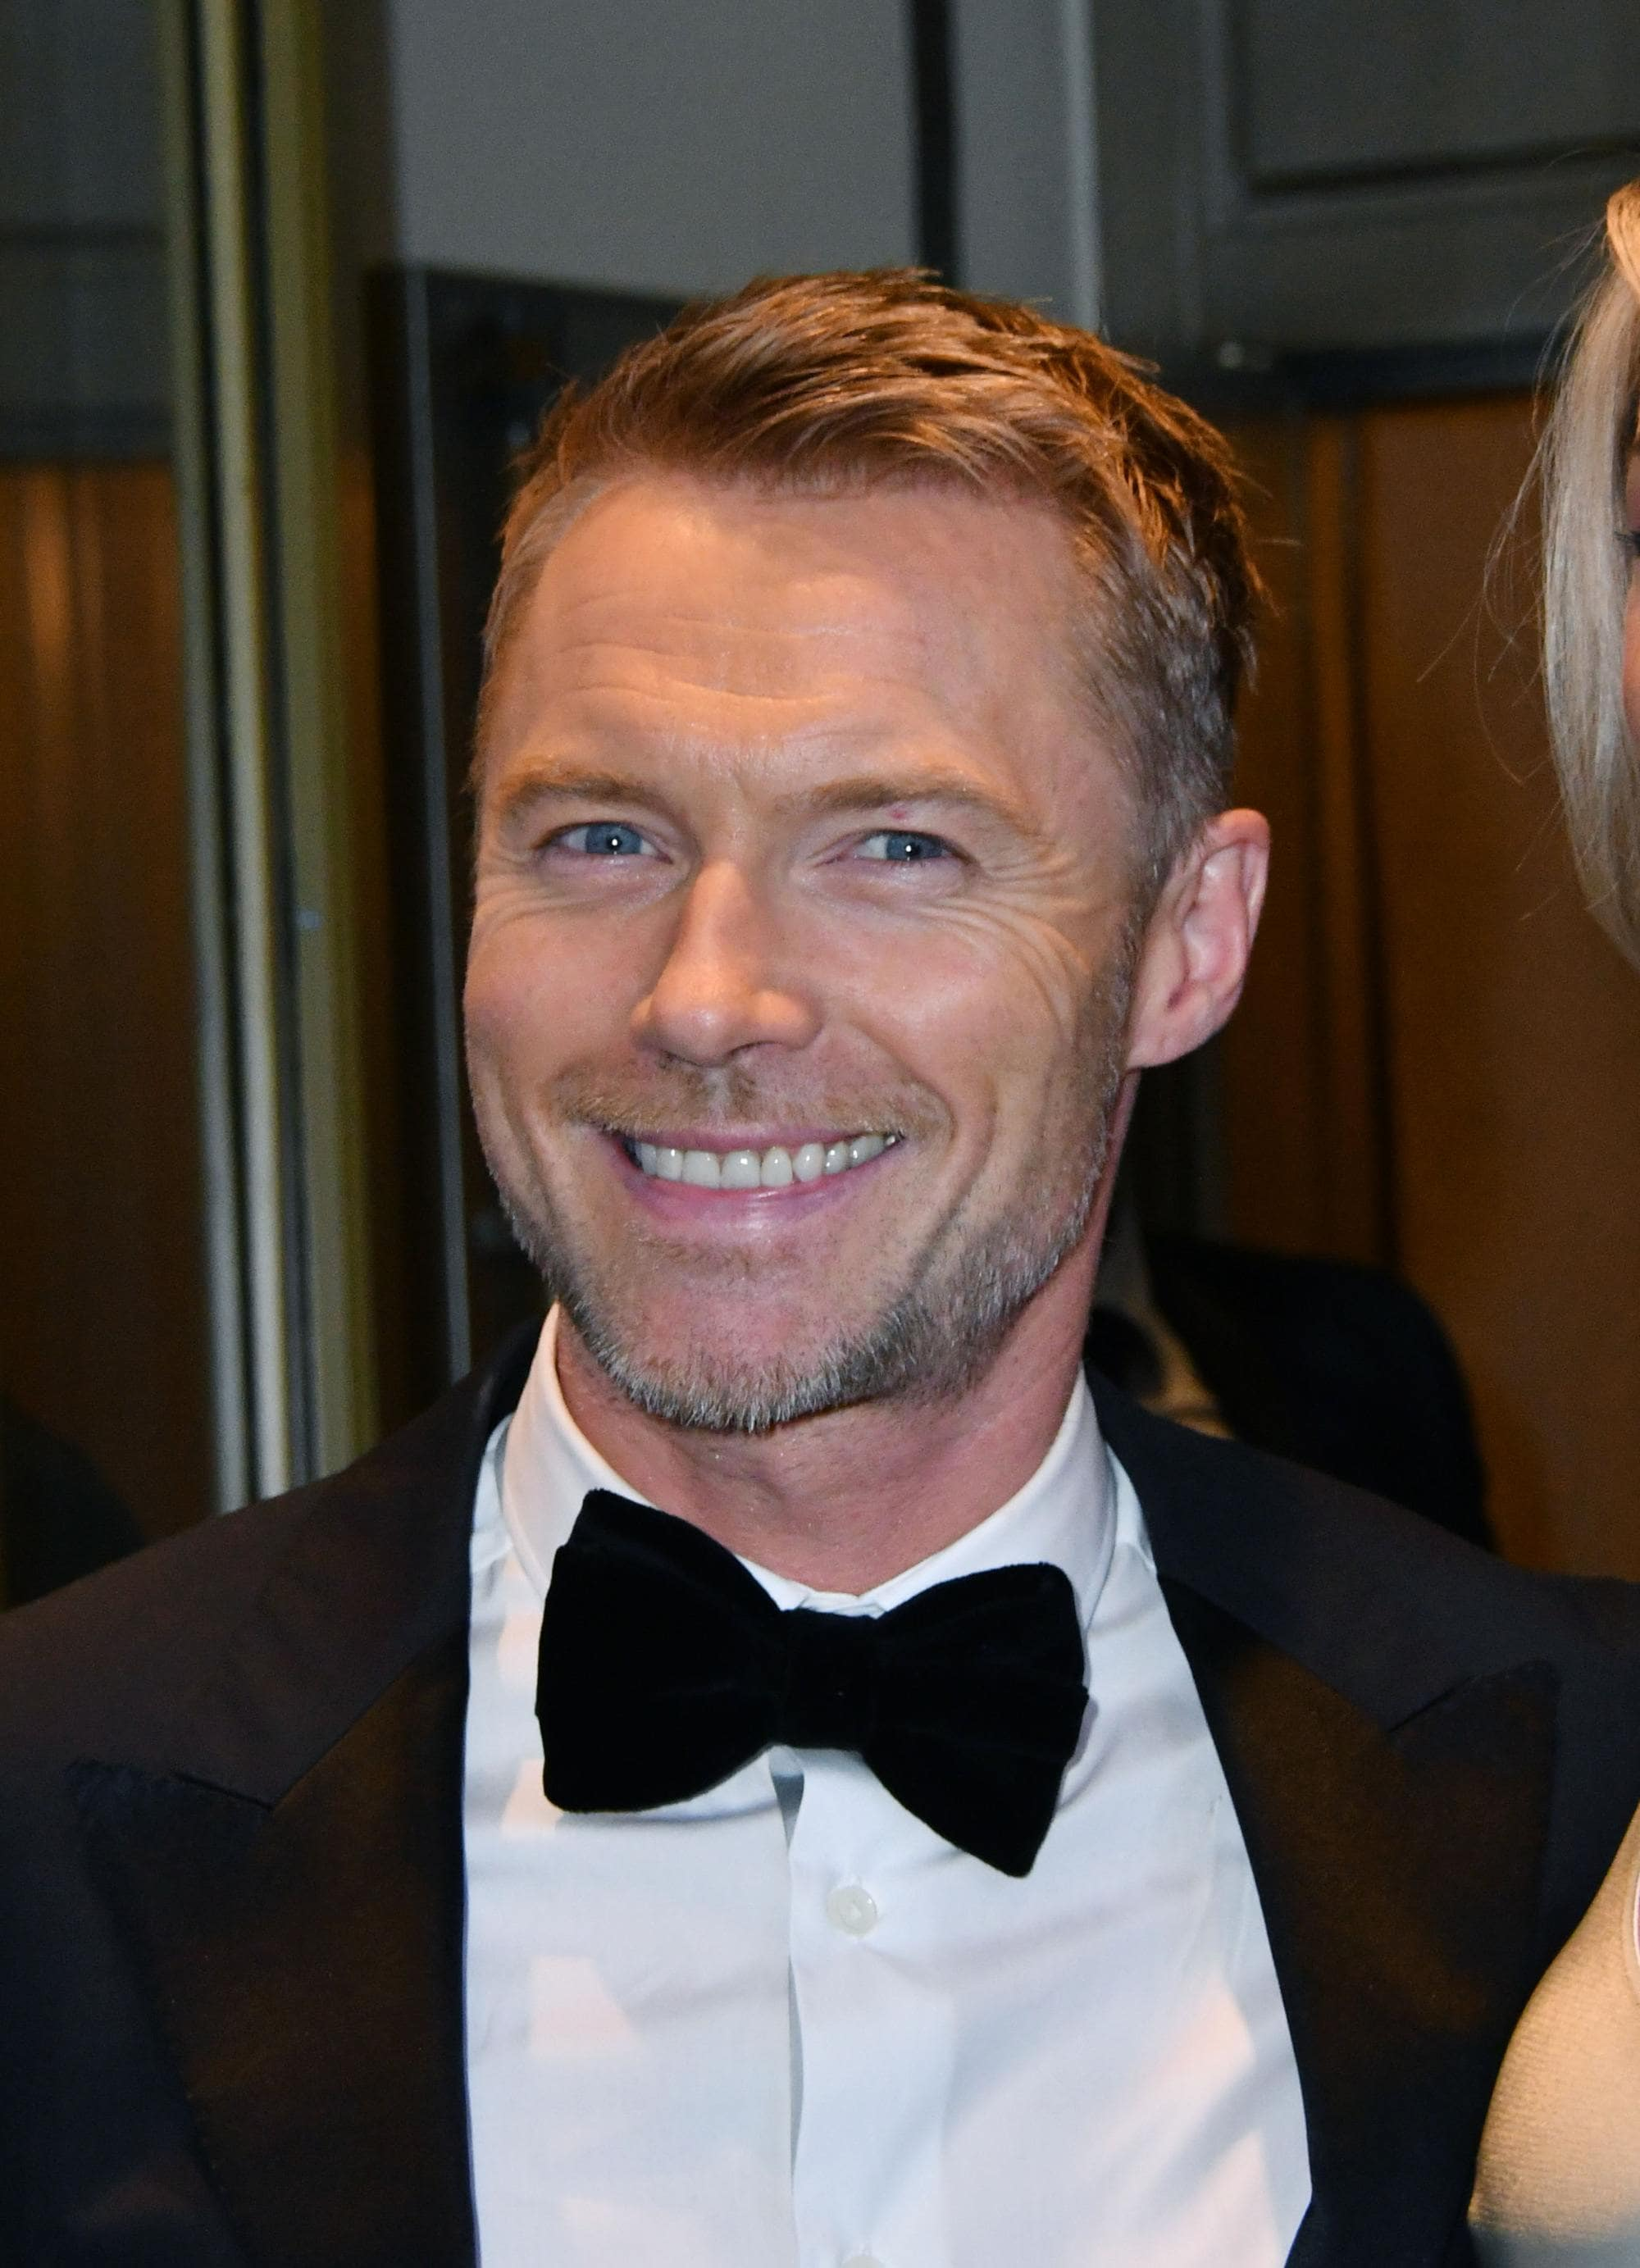 close up shot of ronan keating with side swept hairstyle wearing bow tie and shirt and suit jacket